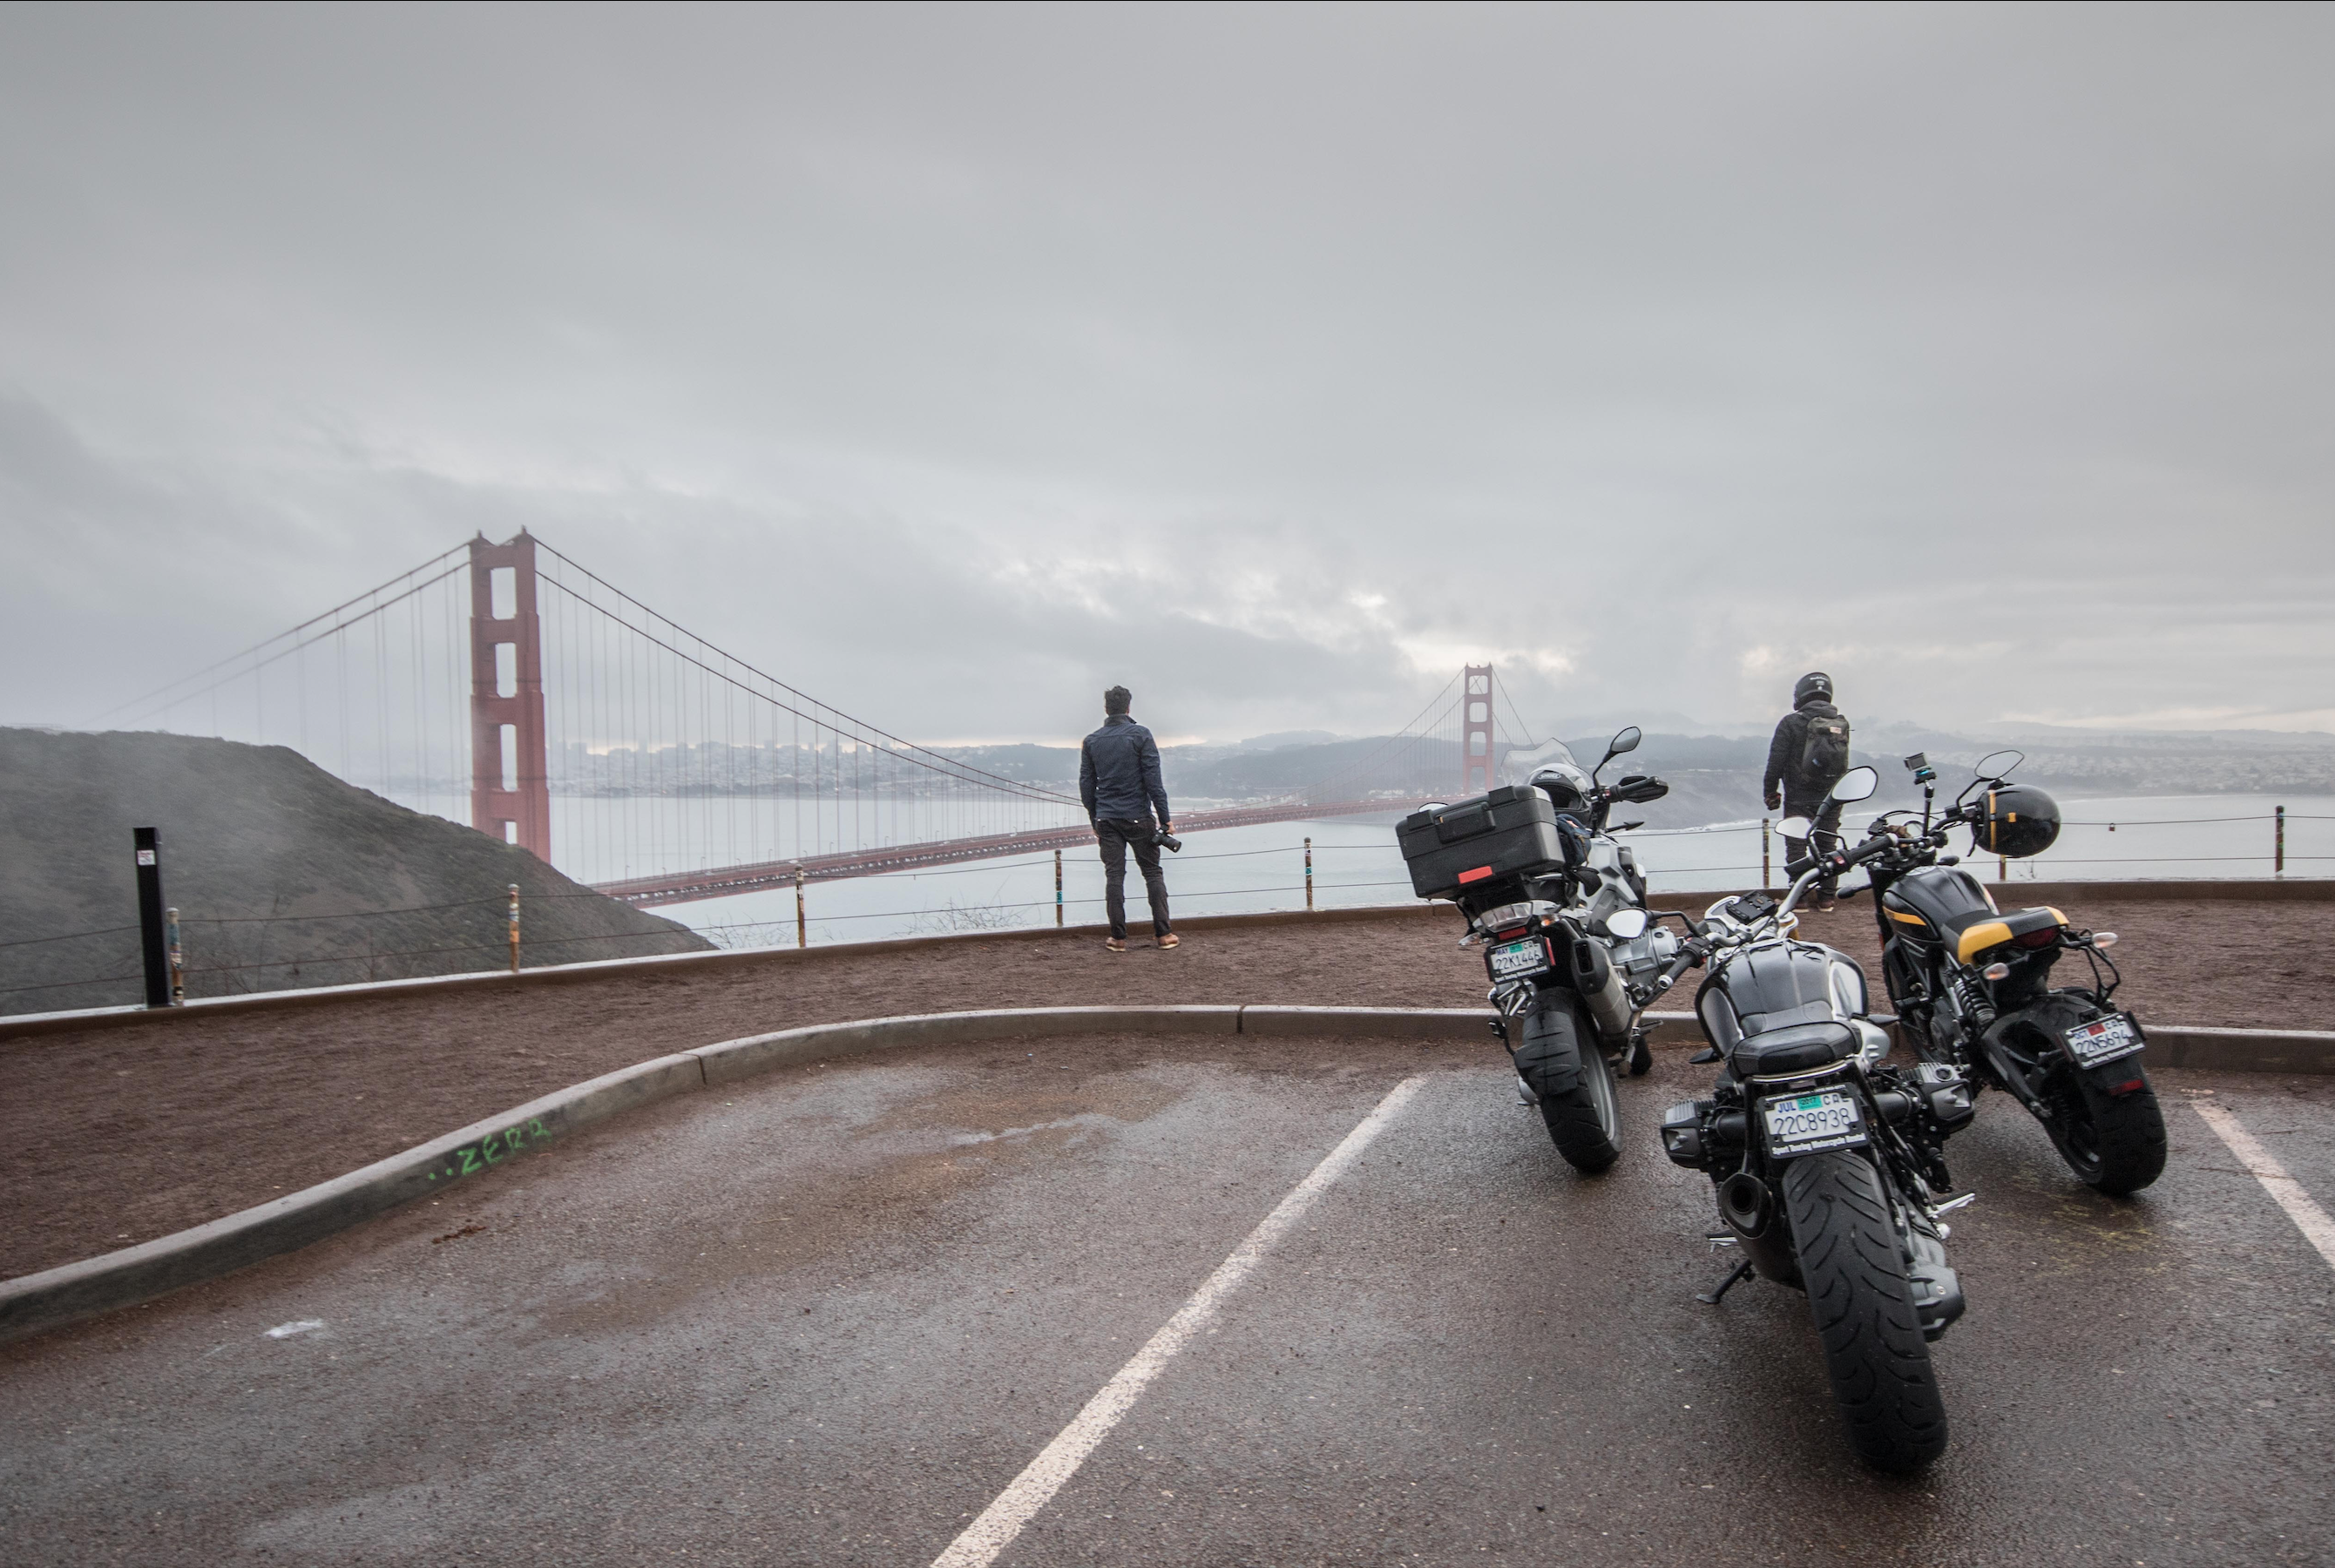 pacific coast highway photo essay  we only had 48 hours so we flew into the city rented three motorcycles got rained on for about 6 hours but we left a memorable experience